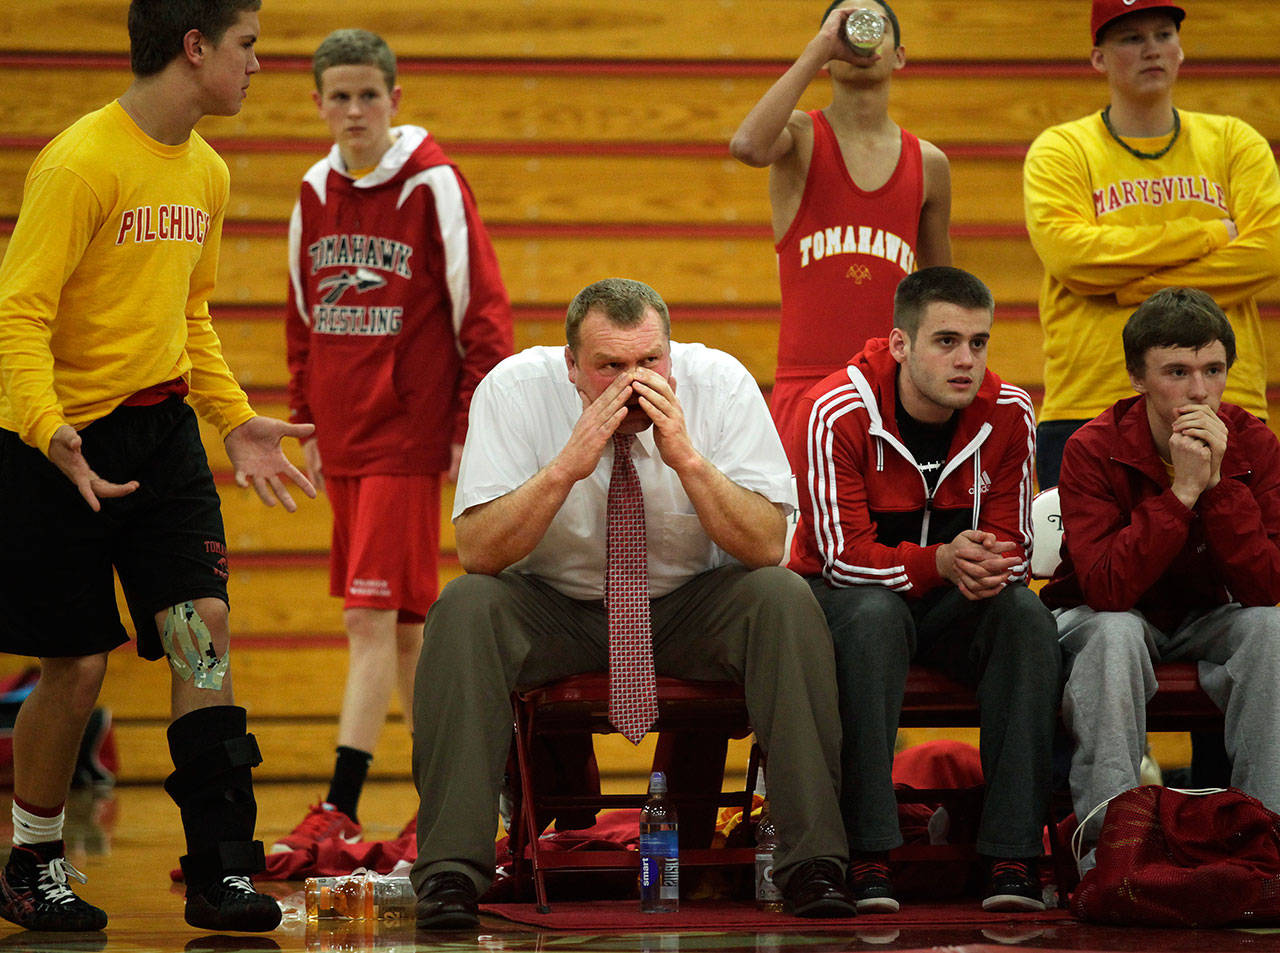 Marysville-Pilchuck head wrestling coach Craig Iversen, center, cheers on his team Dec. 12, 2012 during a nonconference meet against Arlington High School, then coached by his father, Rick Iversen. (Annie Mulligan / Herald file)